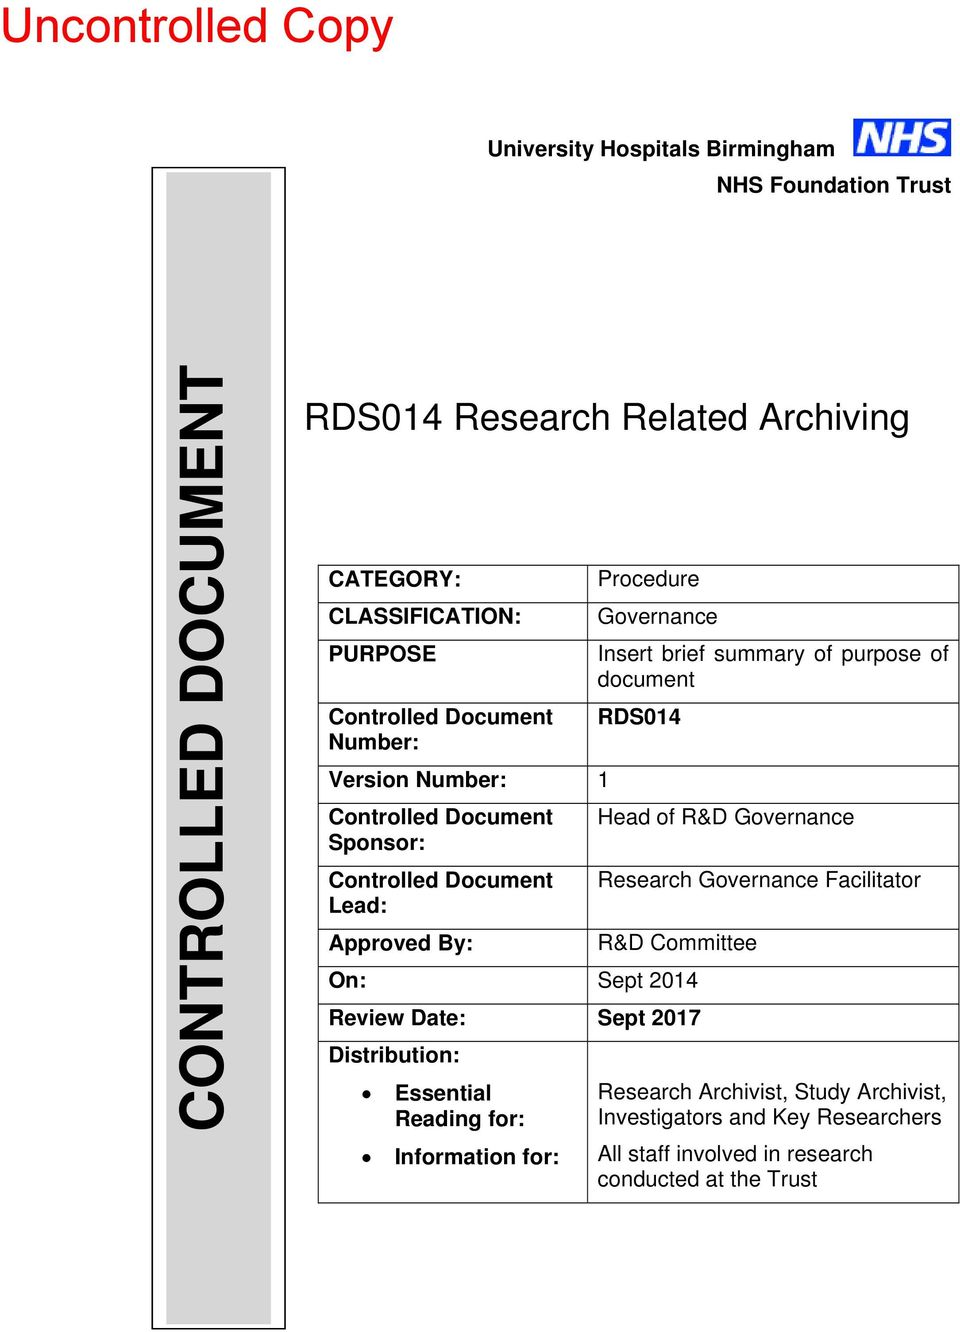 purpose of document RDS014 Head of R&D Governance Research Governance Facilitator R&D Committee On: Sept 2014 Review Date: Sept 2017 Distribution: